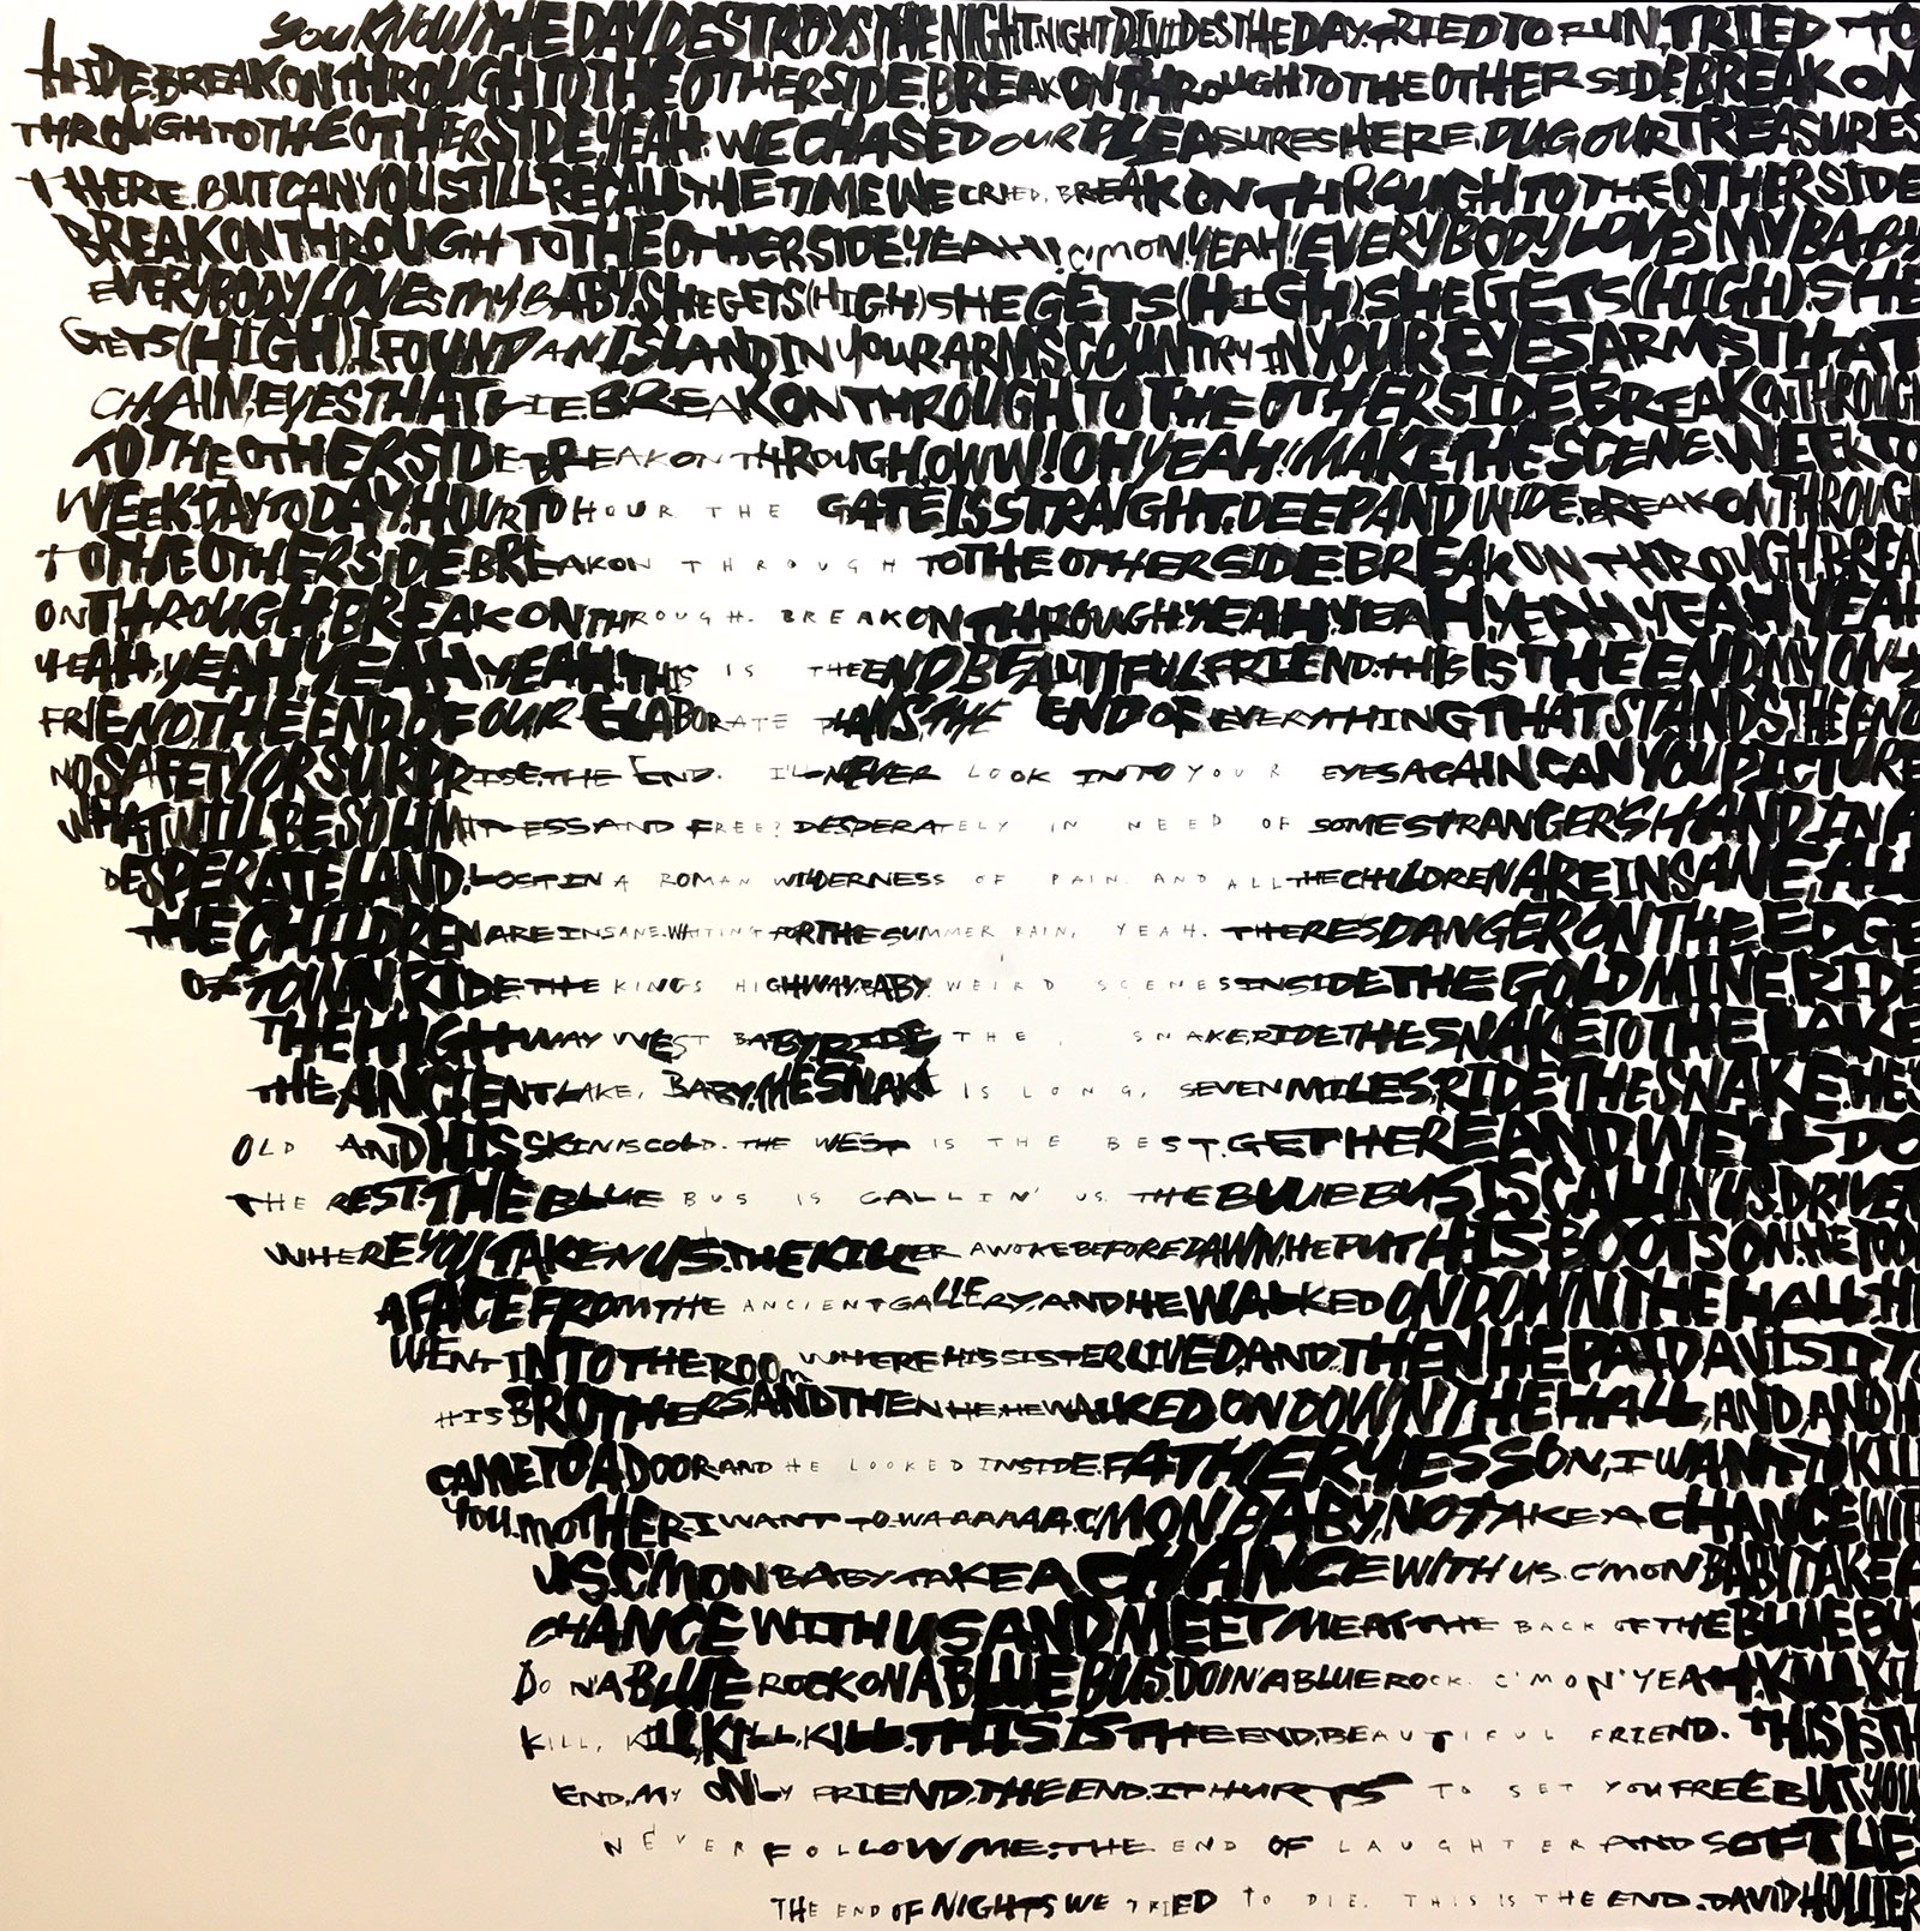 Jim Morrison (Text: 'Break on Through' and 'The End' by The Doors) by David Hollier